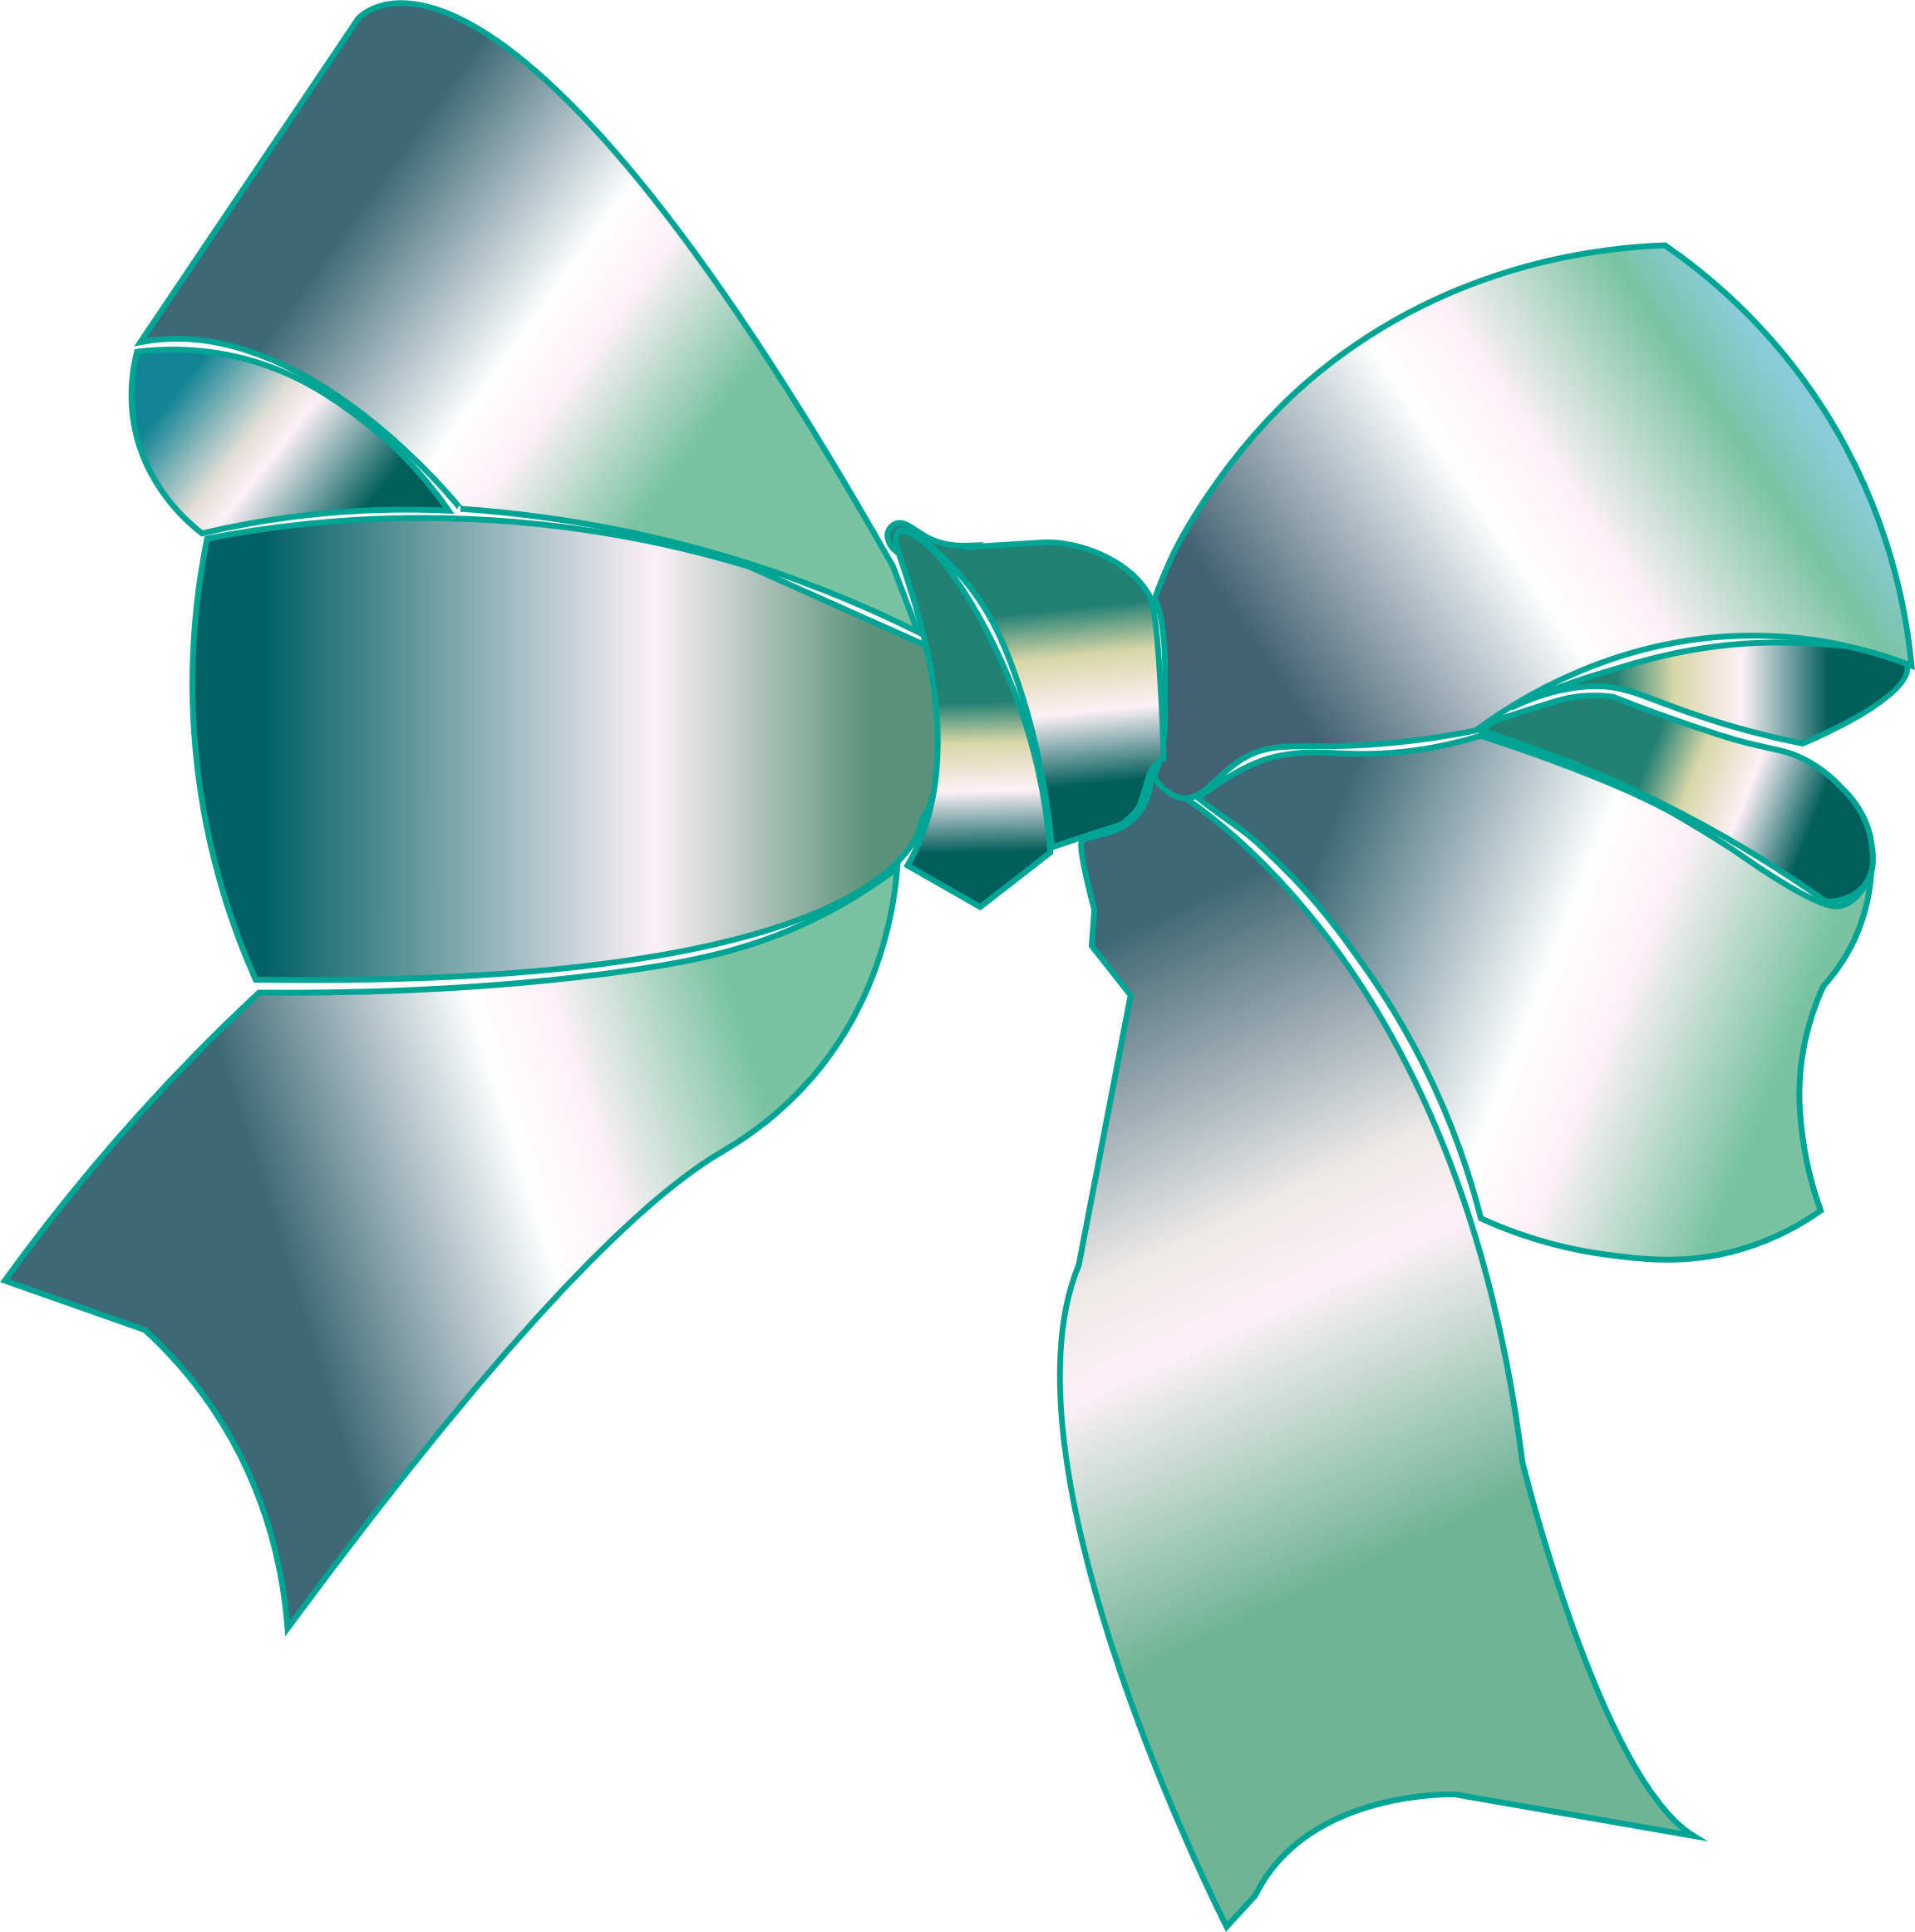 Clipart - Shiny Reflective Silver Ribbon